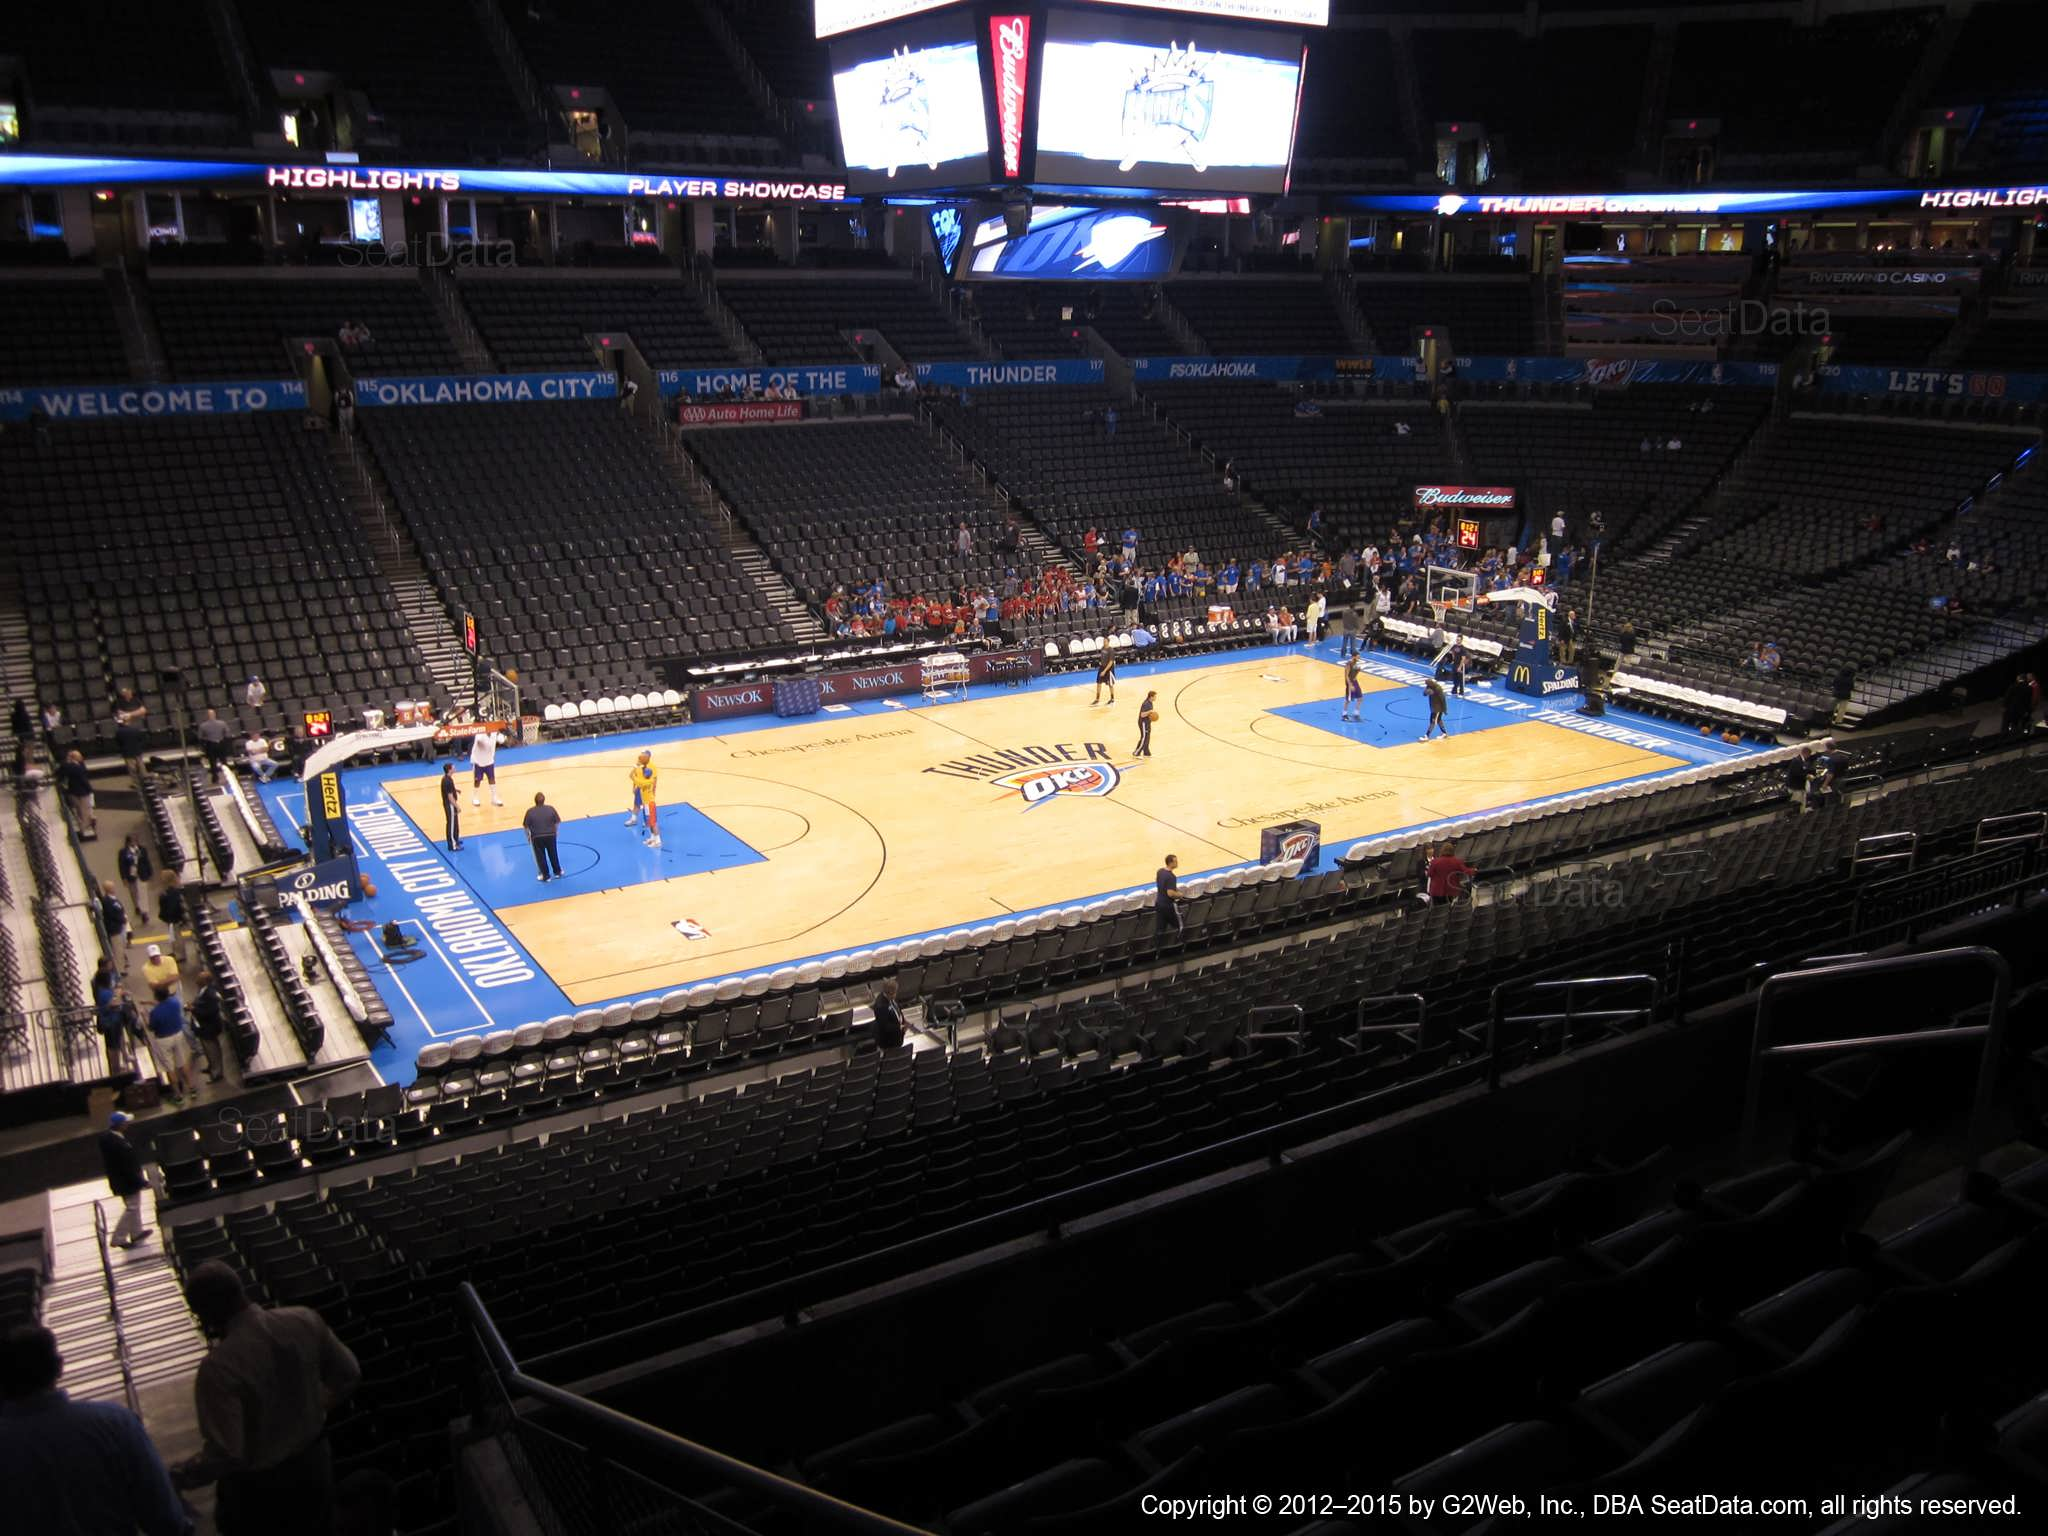 Seat view from section 210 at Chesapeake Energy Arena, home of the Oklahoma City Thunder